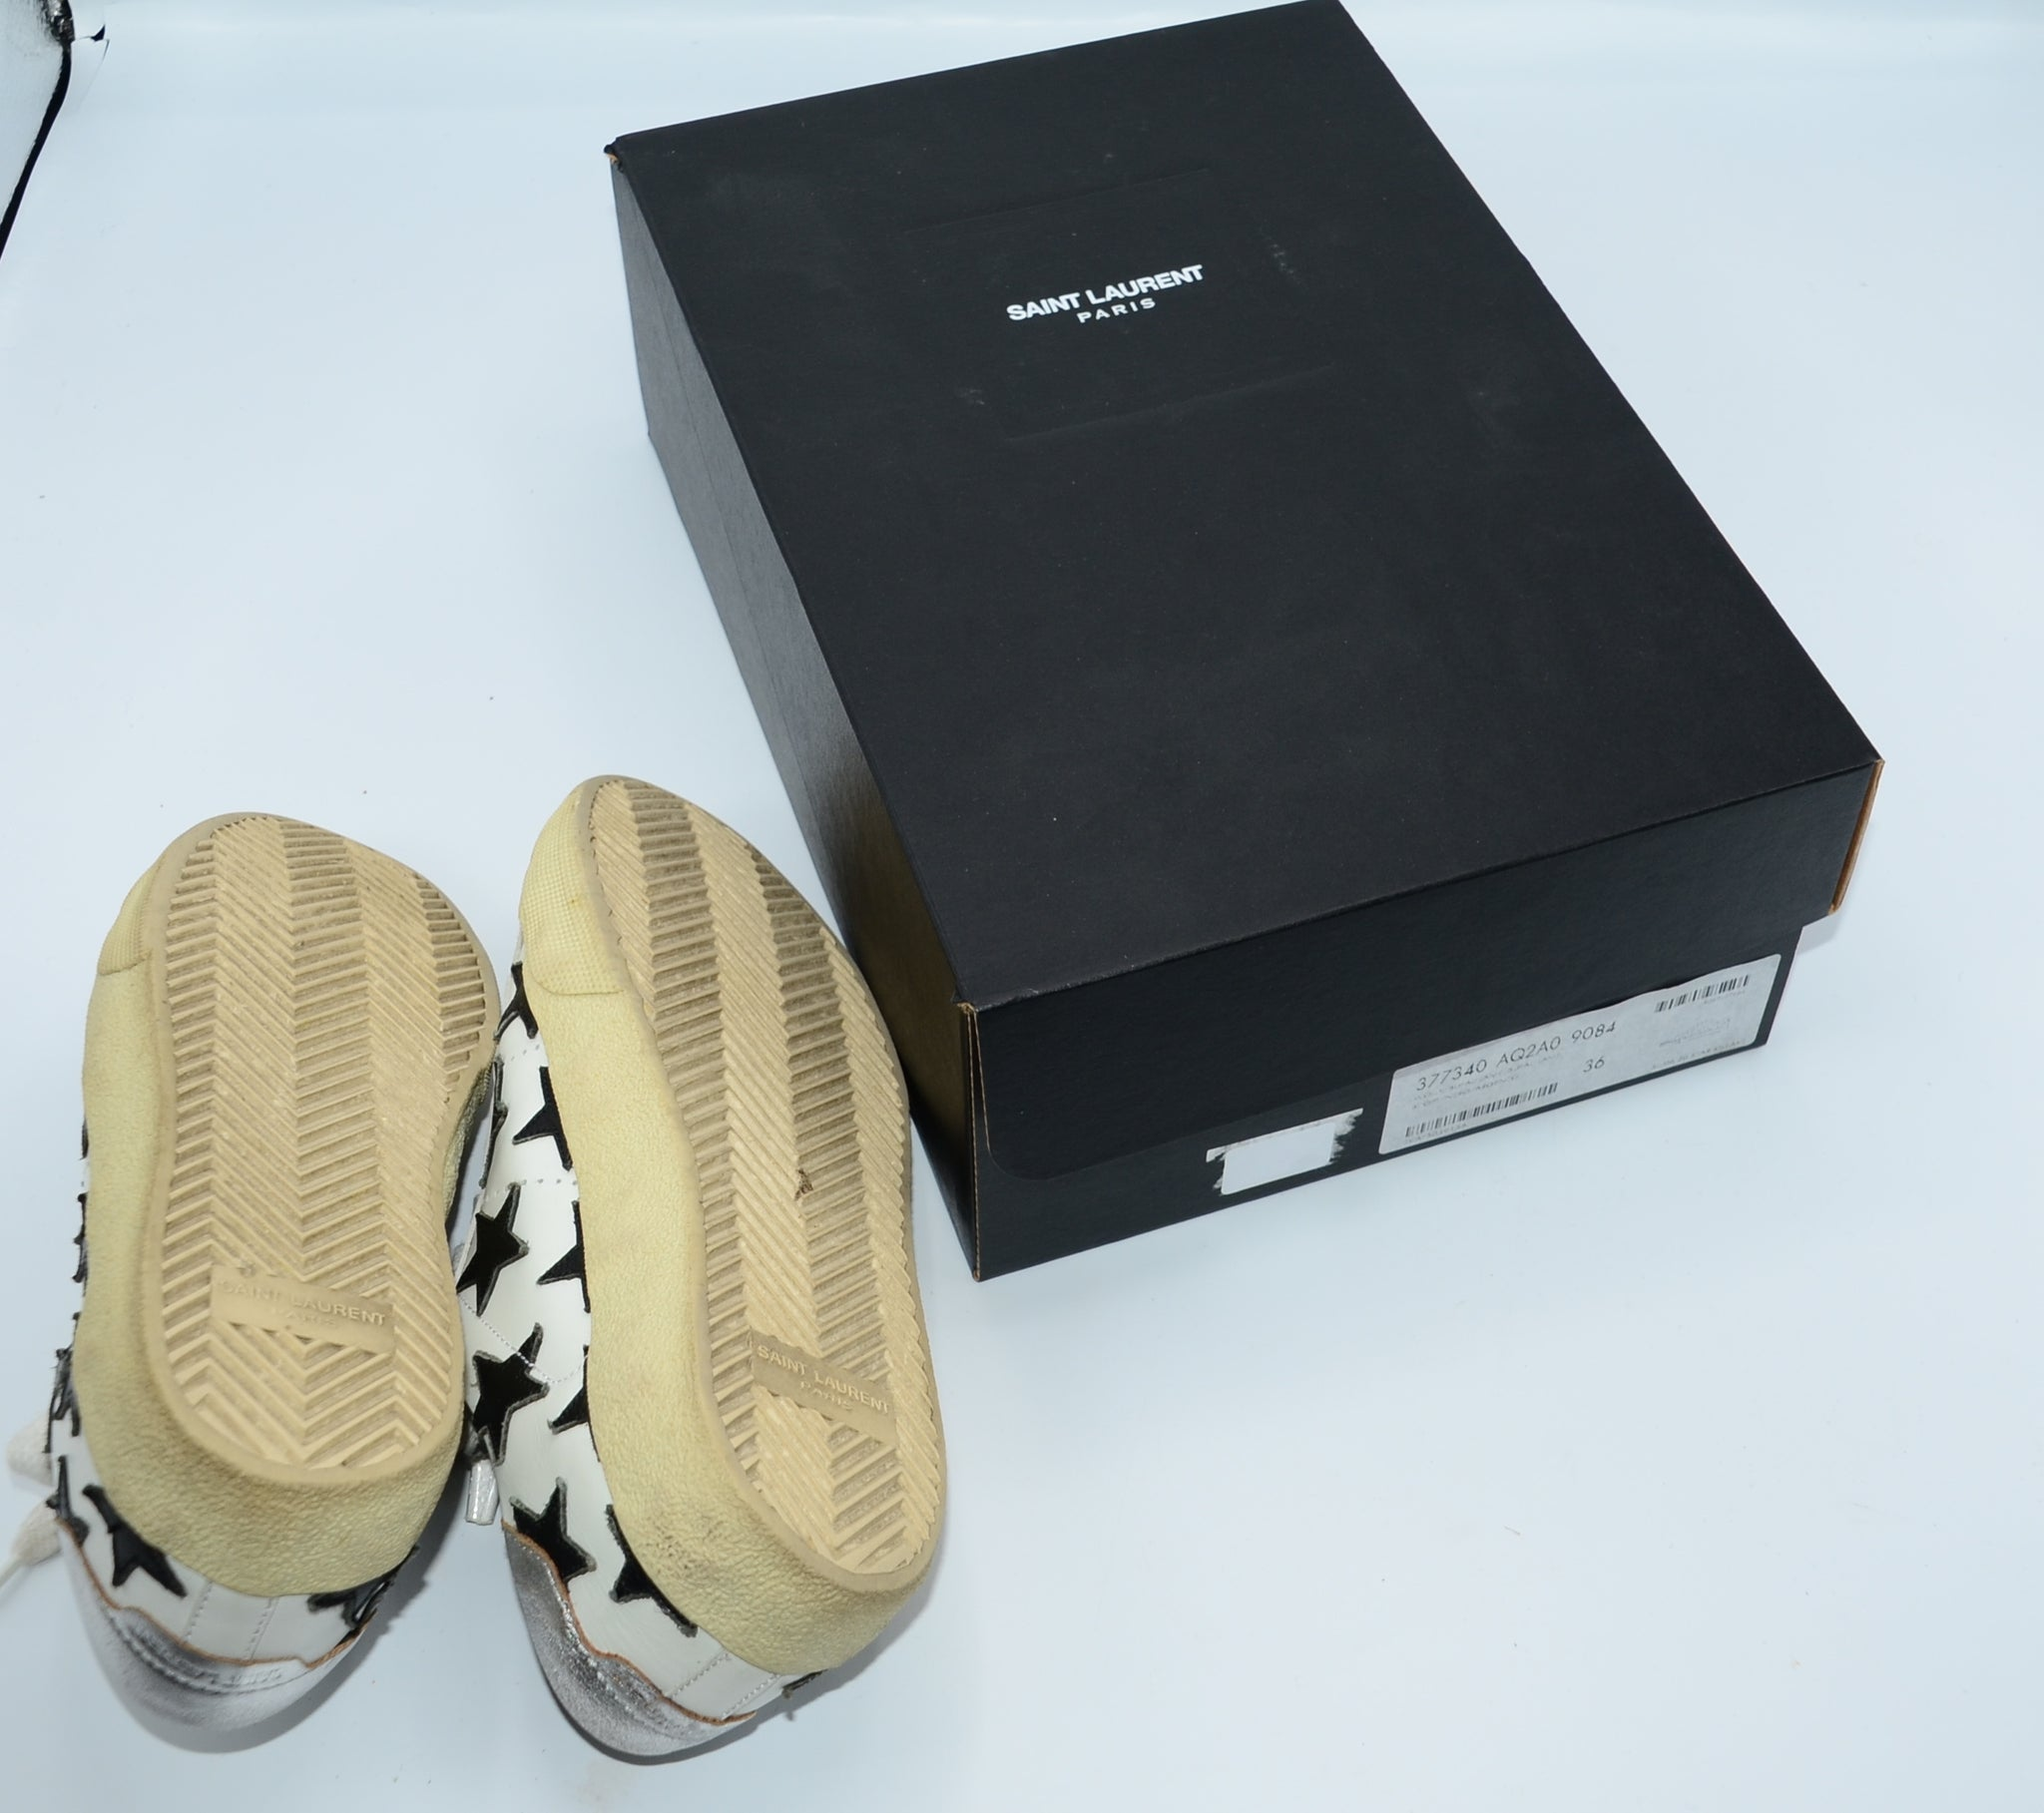 Saint Laurent California Sneaker - Iconics Preloved Luxury